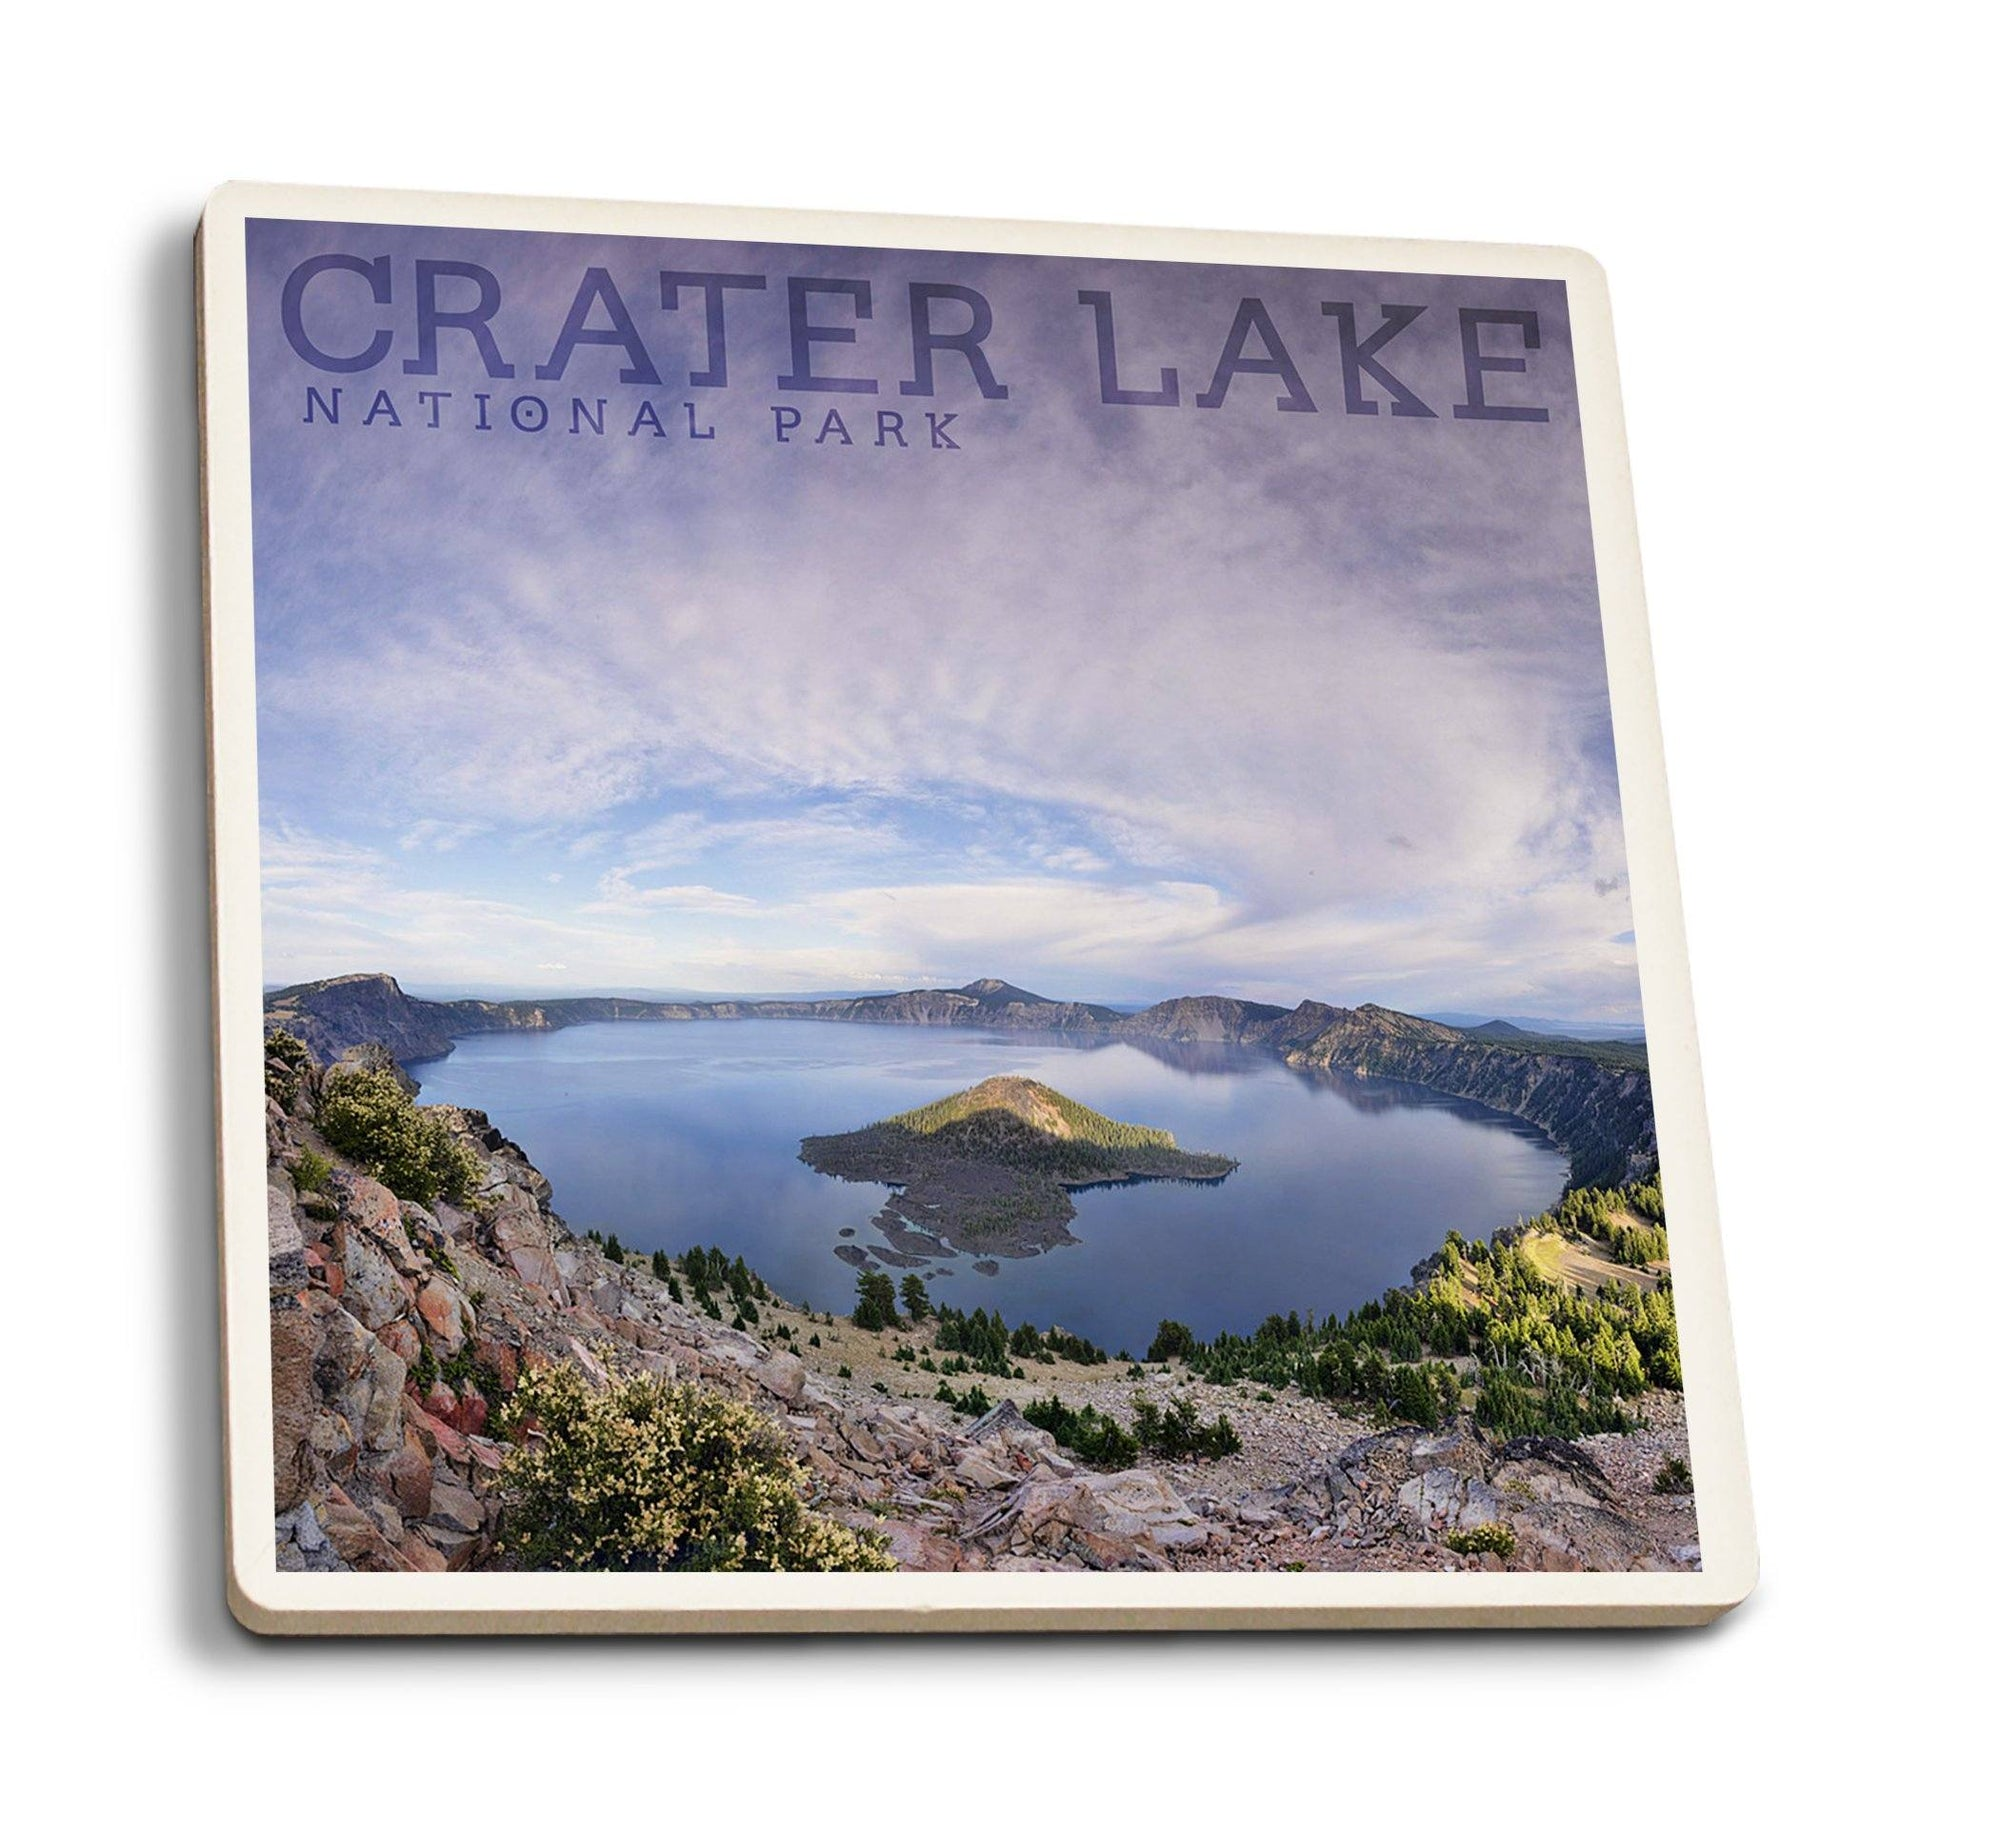 Coaster (Crater Lake National Park, Oregon - Panoramic View - Lantern Press Photography) Coaster Nightingale Boutique Coaster Pack